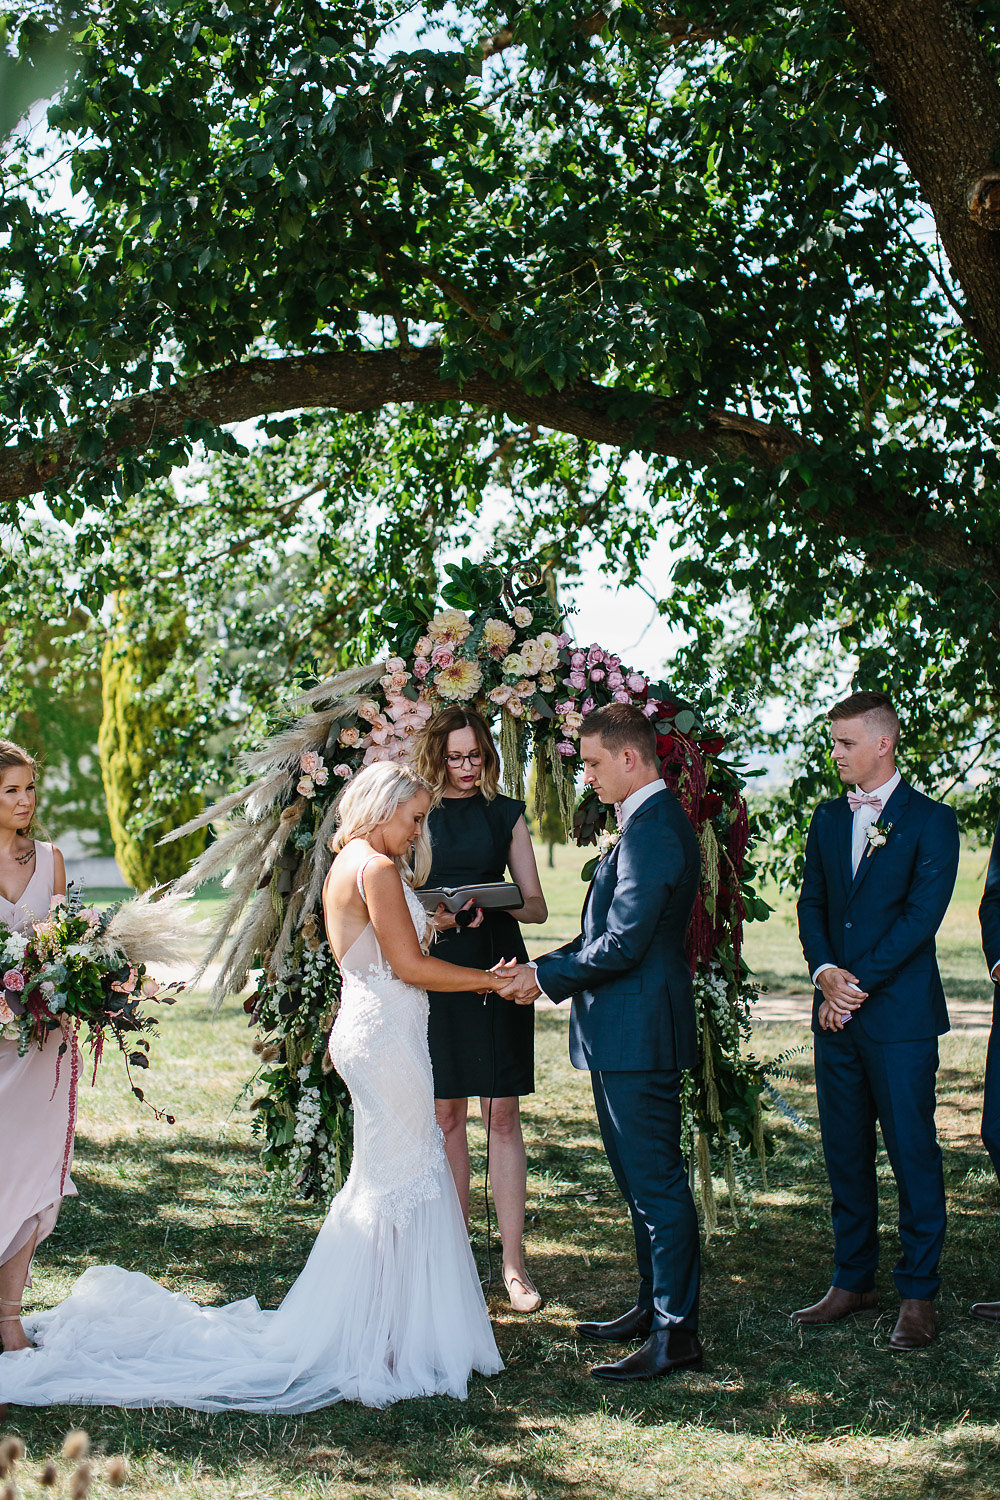 Under the flower arch at Stones